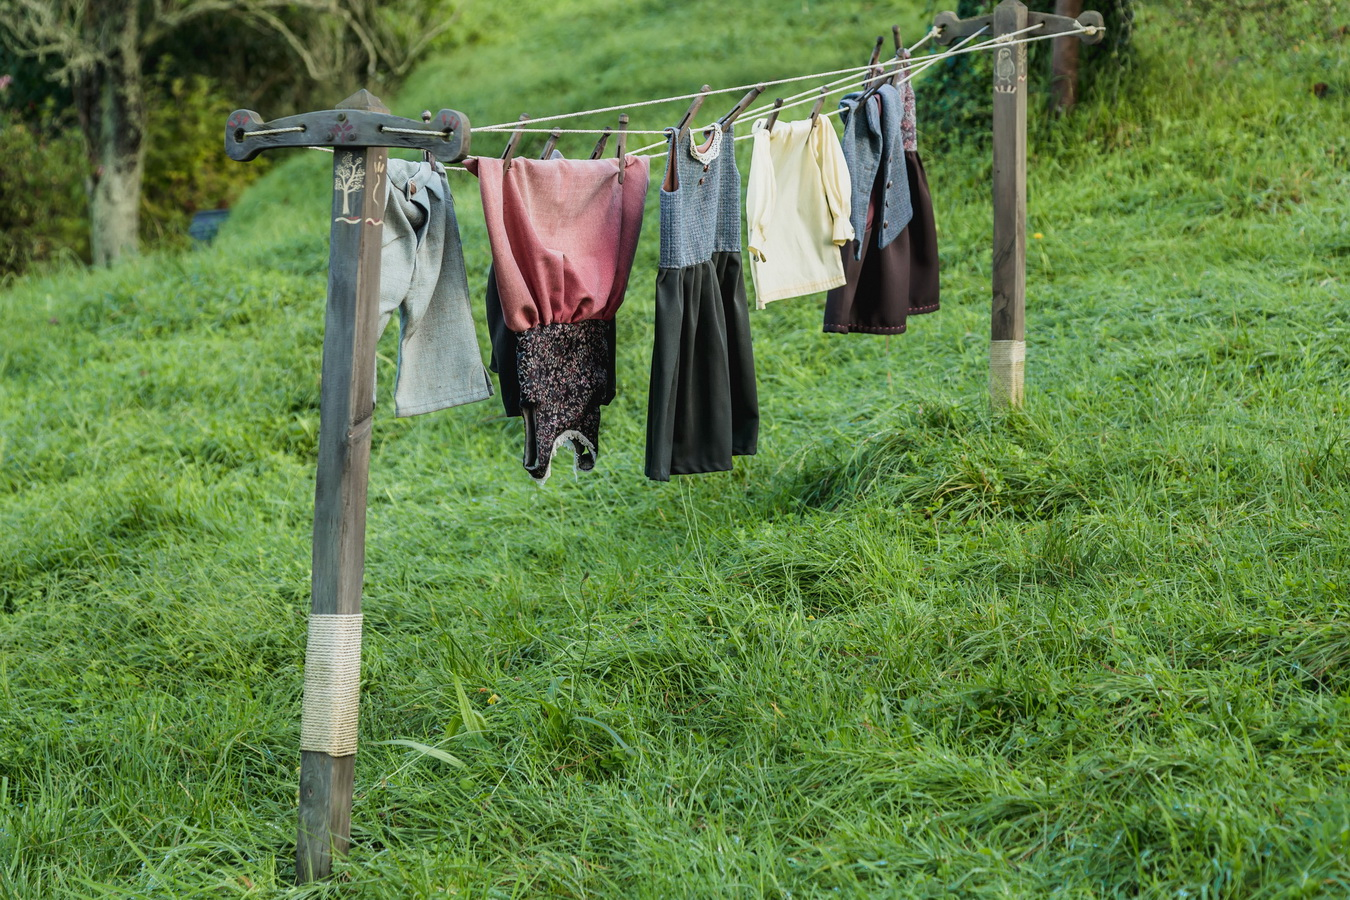 drying dresses,The Hobbiton, The Shire,Хоббитшир, Удел, Хоббитания, Заселье, Край,Matamata, North Island ,New Zealand